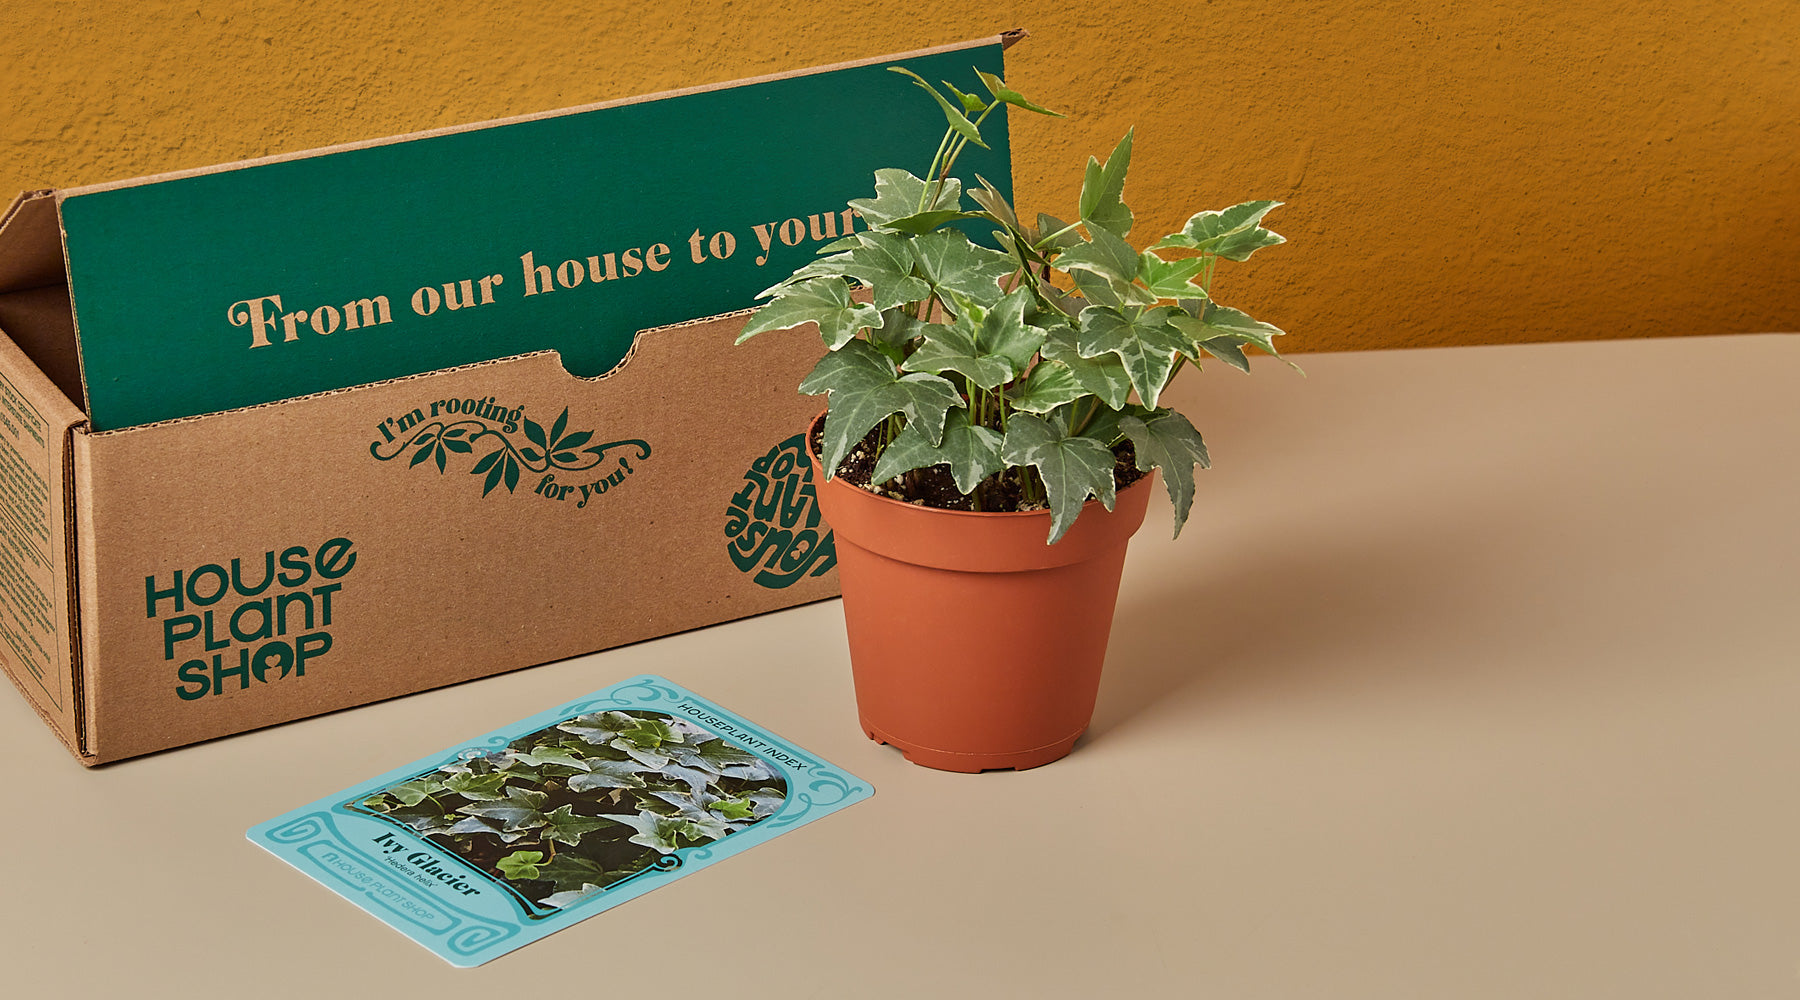 House Plant Shop Fast Shipping Nationwide Guarantee On All Plants